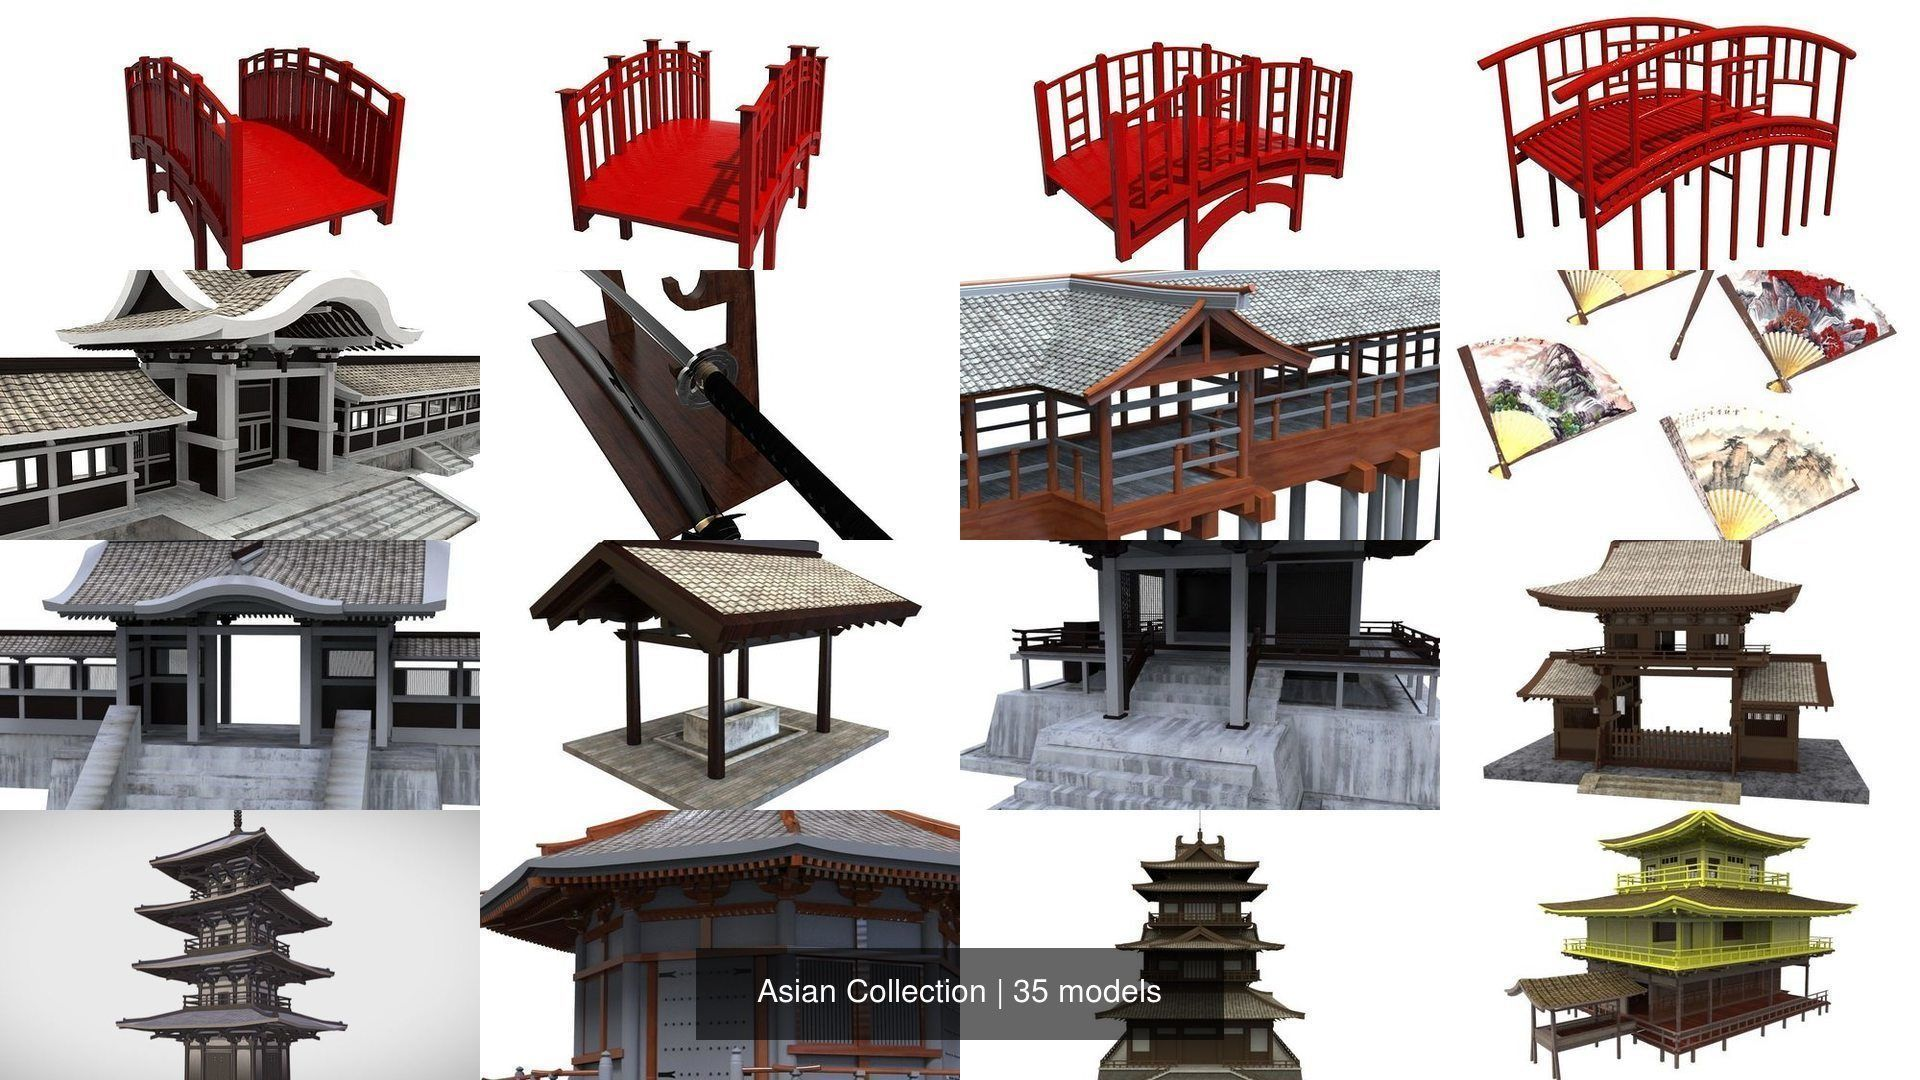 Asian Collection